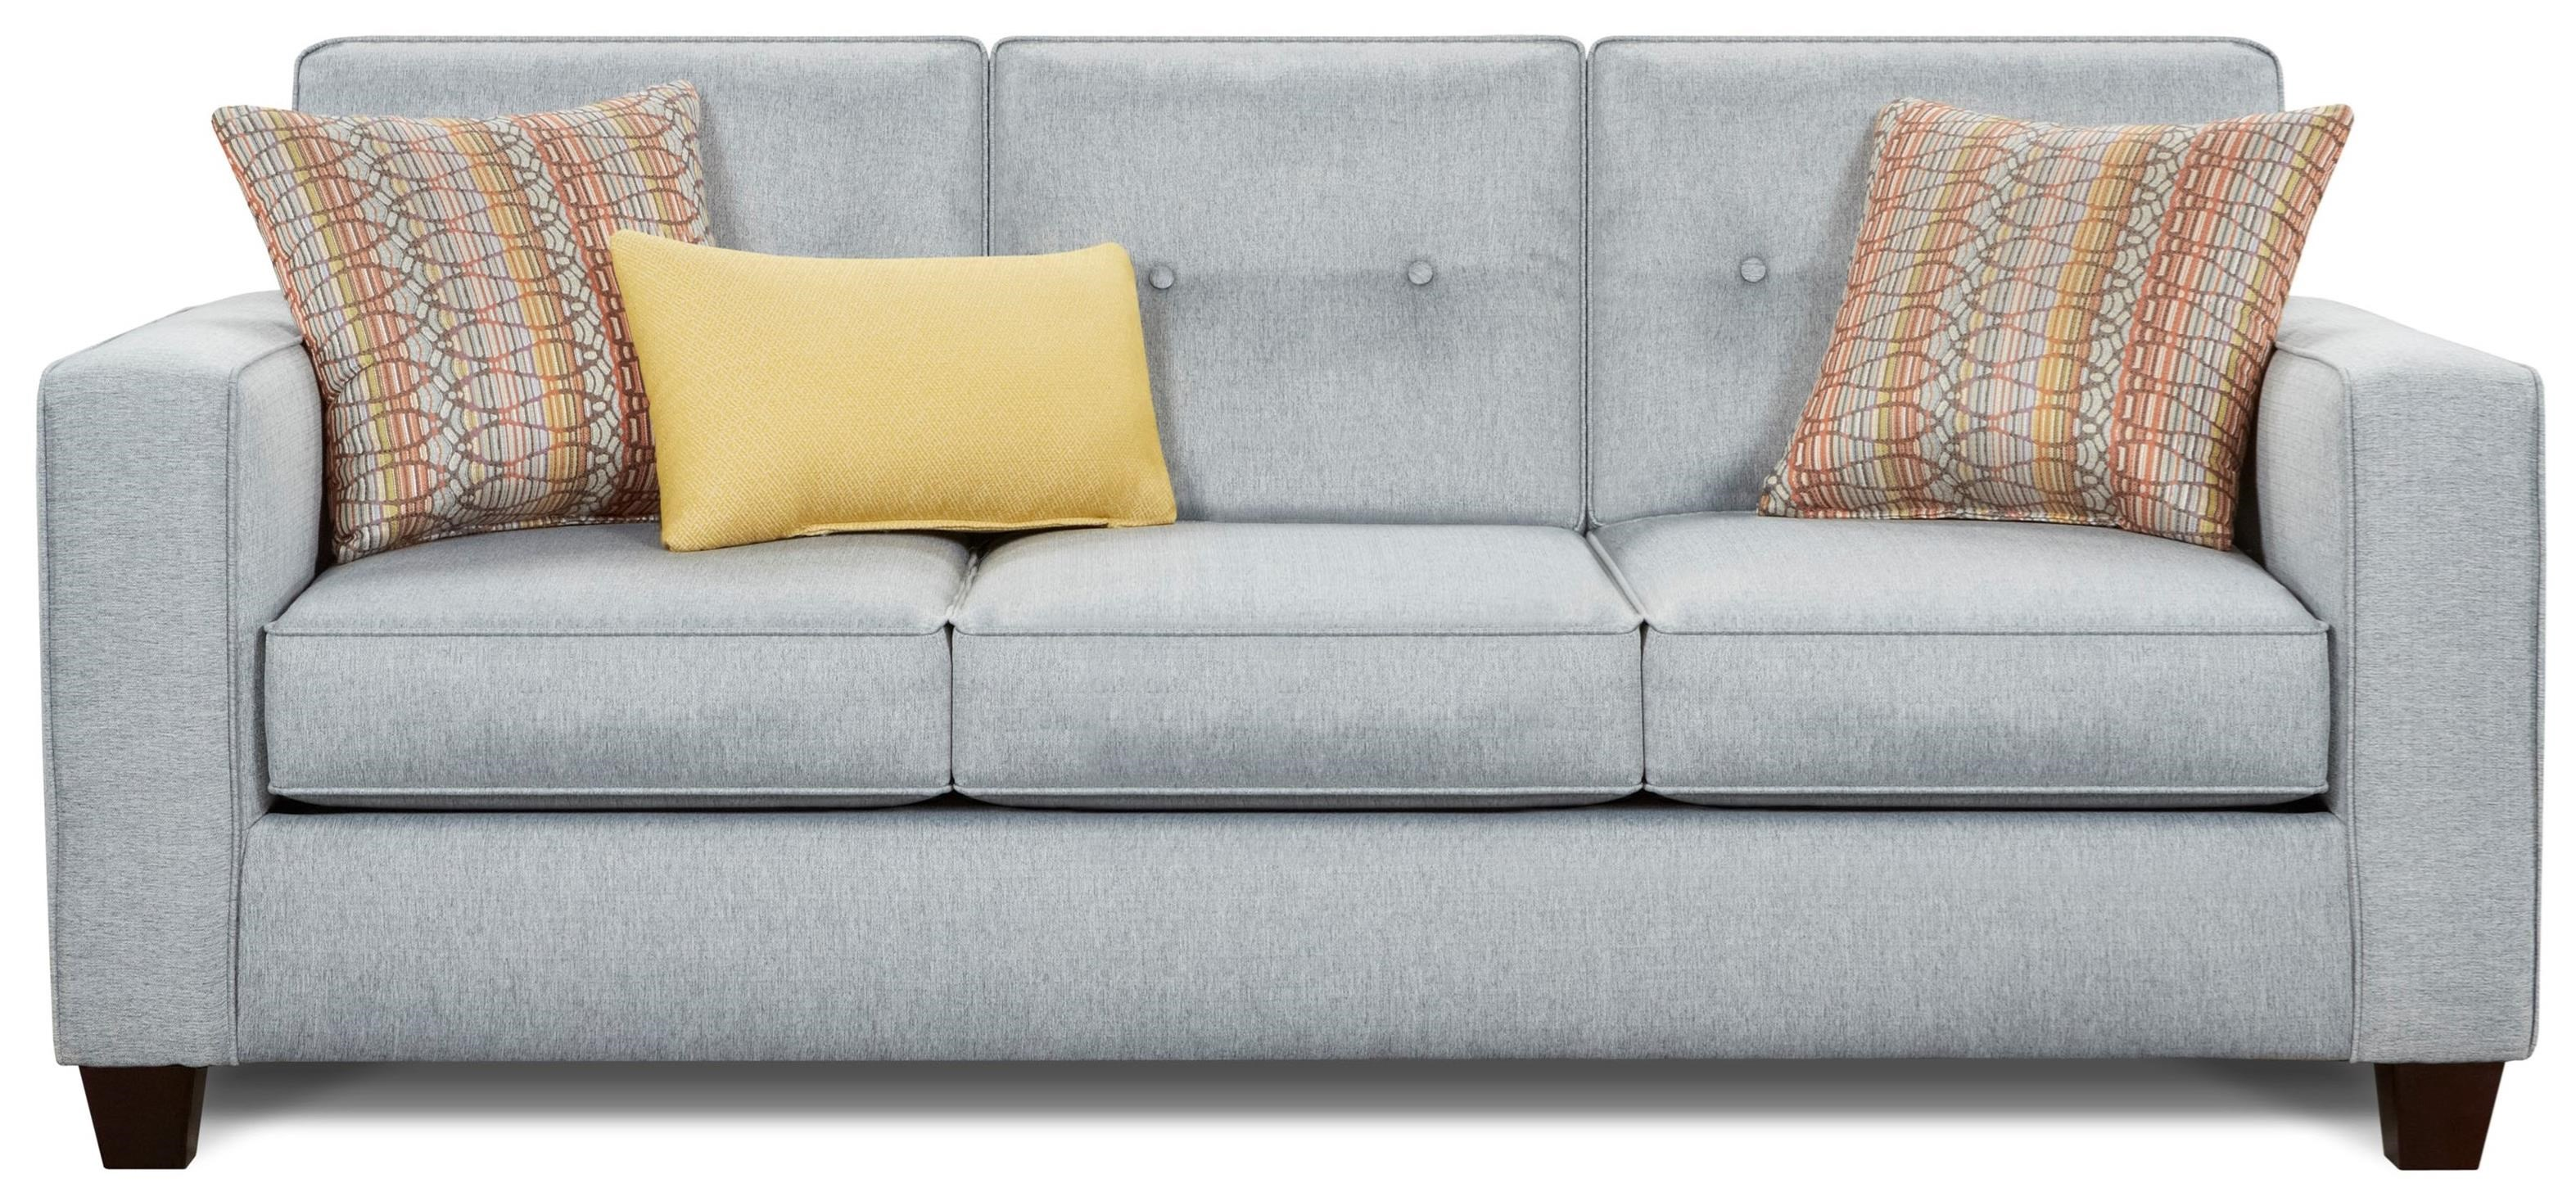 Fusion Furniture 3560B Sofa - Item Number: 3560B-KPFandango Silver